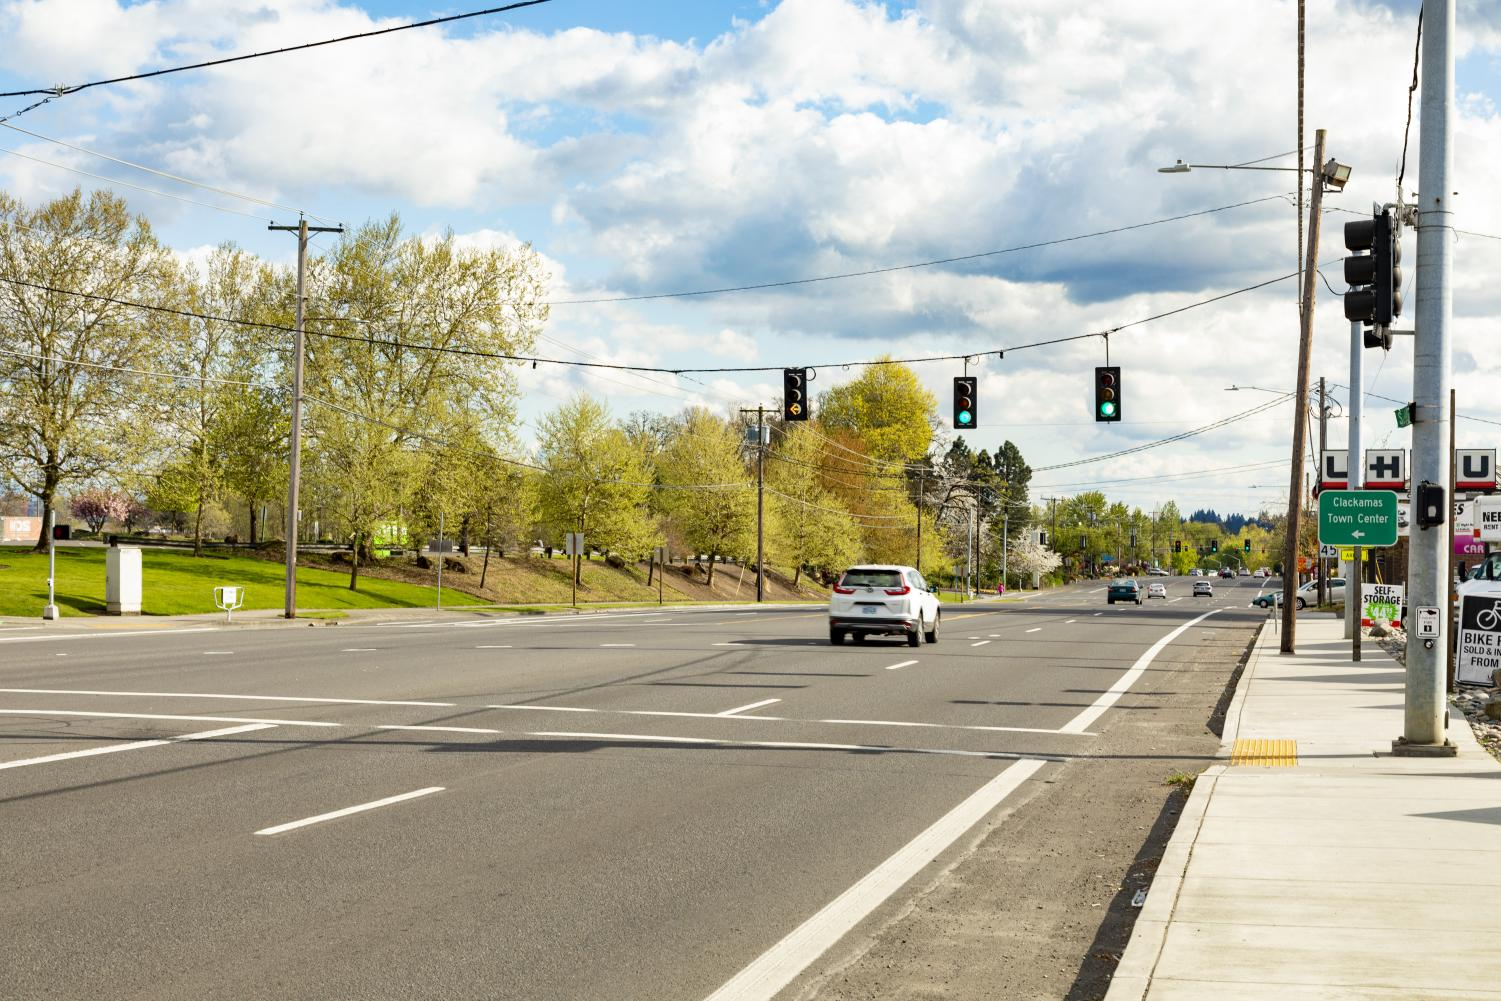 Deserted+Streets+and+Empty+Parking+Lots%3A+COVID-19+Sweeps+Across+Clackamas